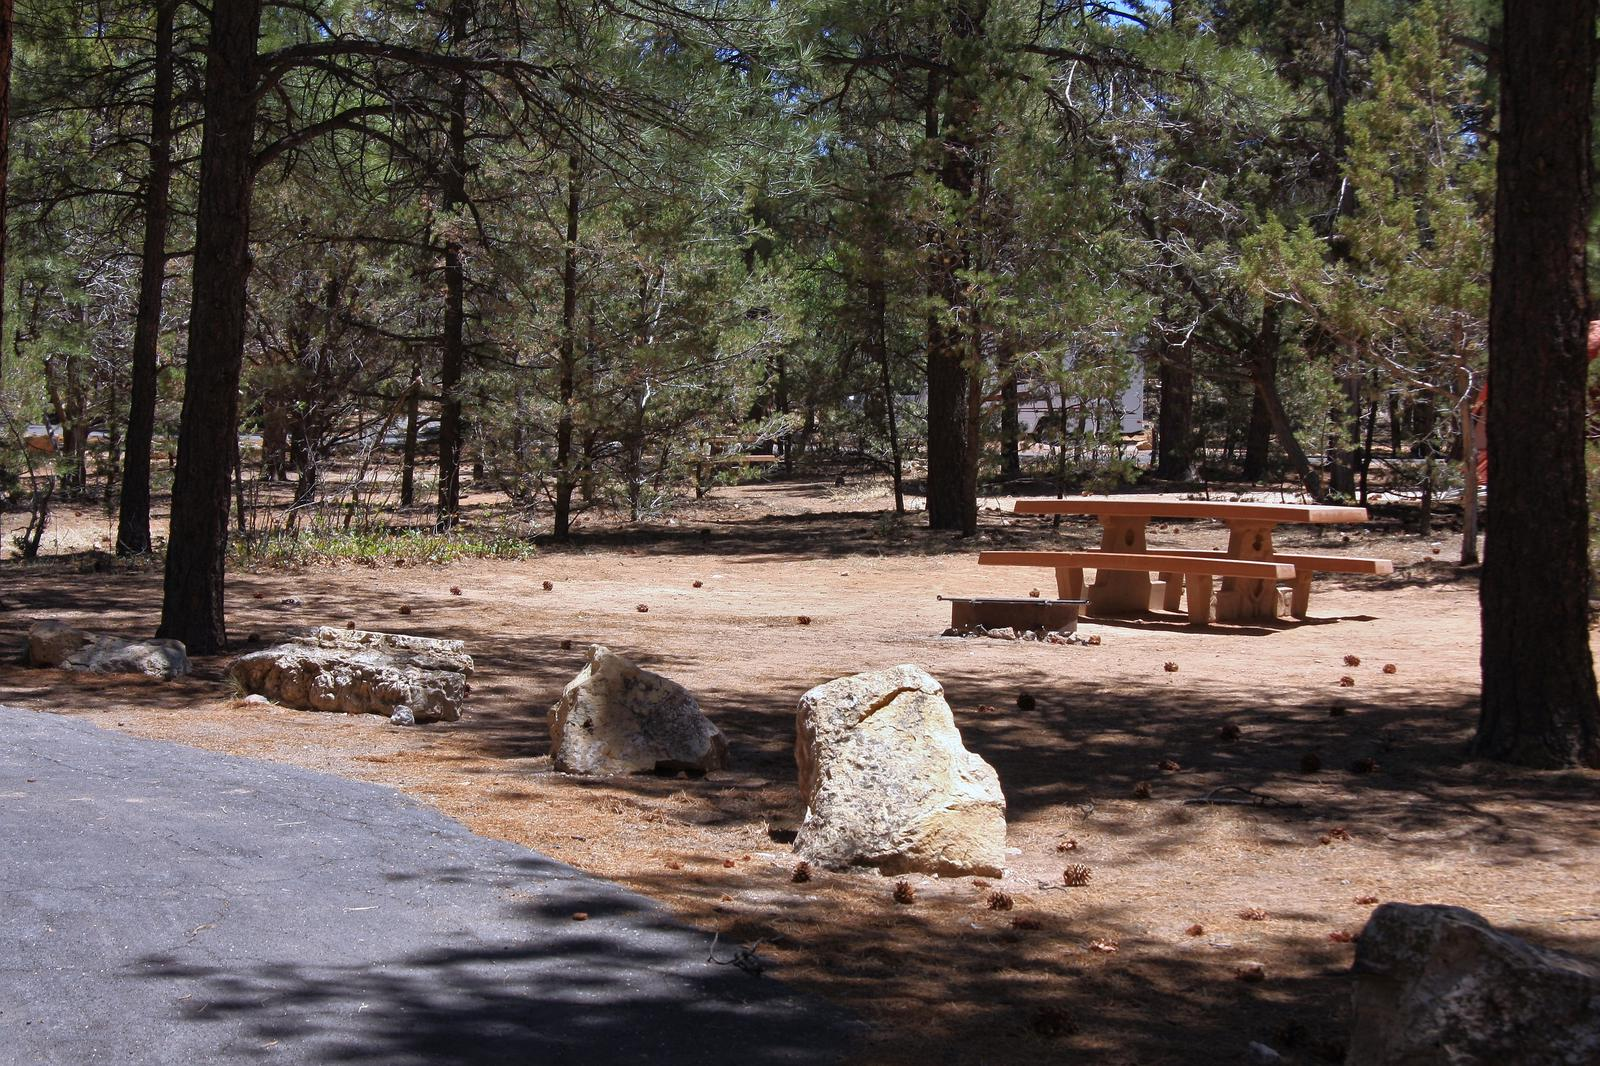 Picnic table, fire pit, and parking spot, Mather CampgroundPicnic table, fire pit, and parking spot for Fir Loop 68, Mather Campground